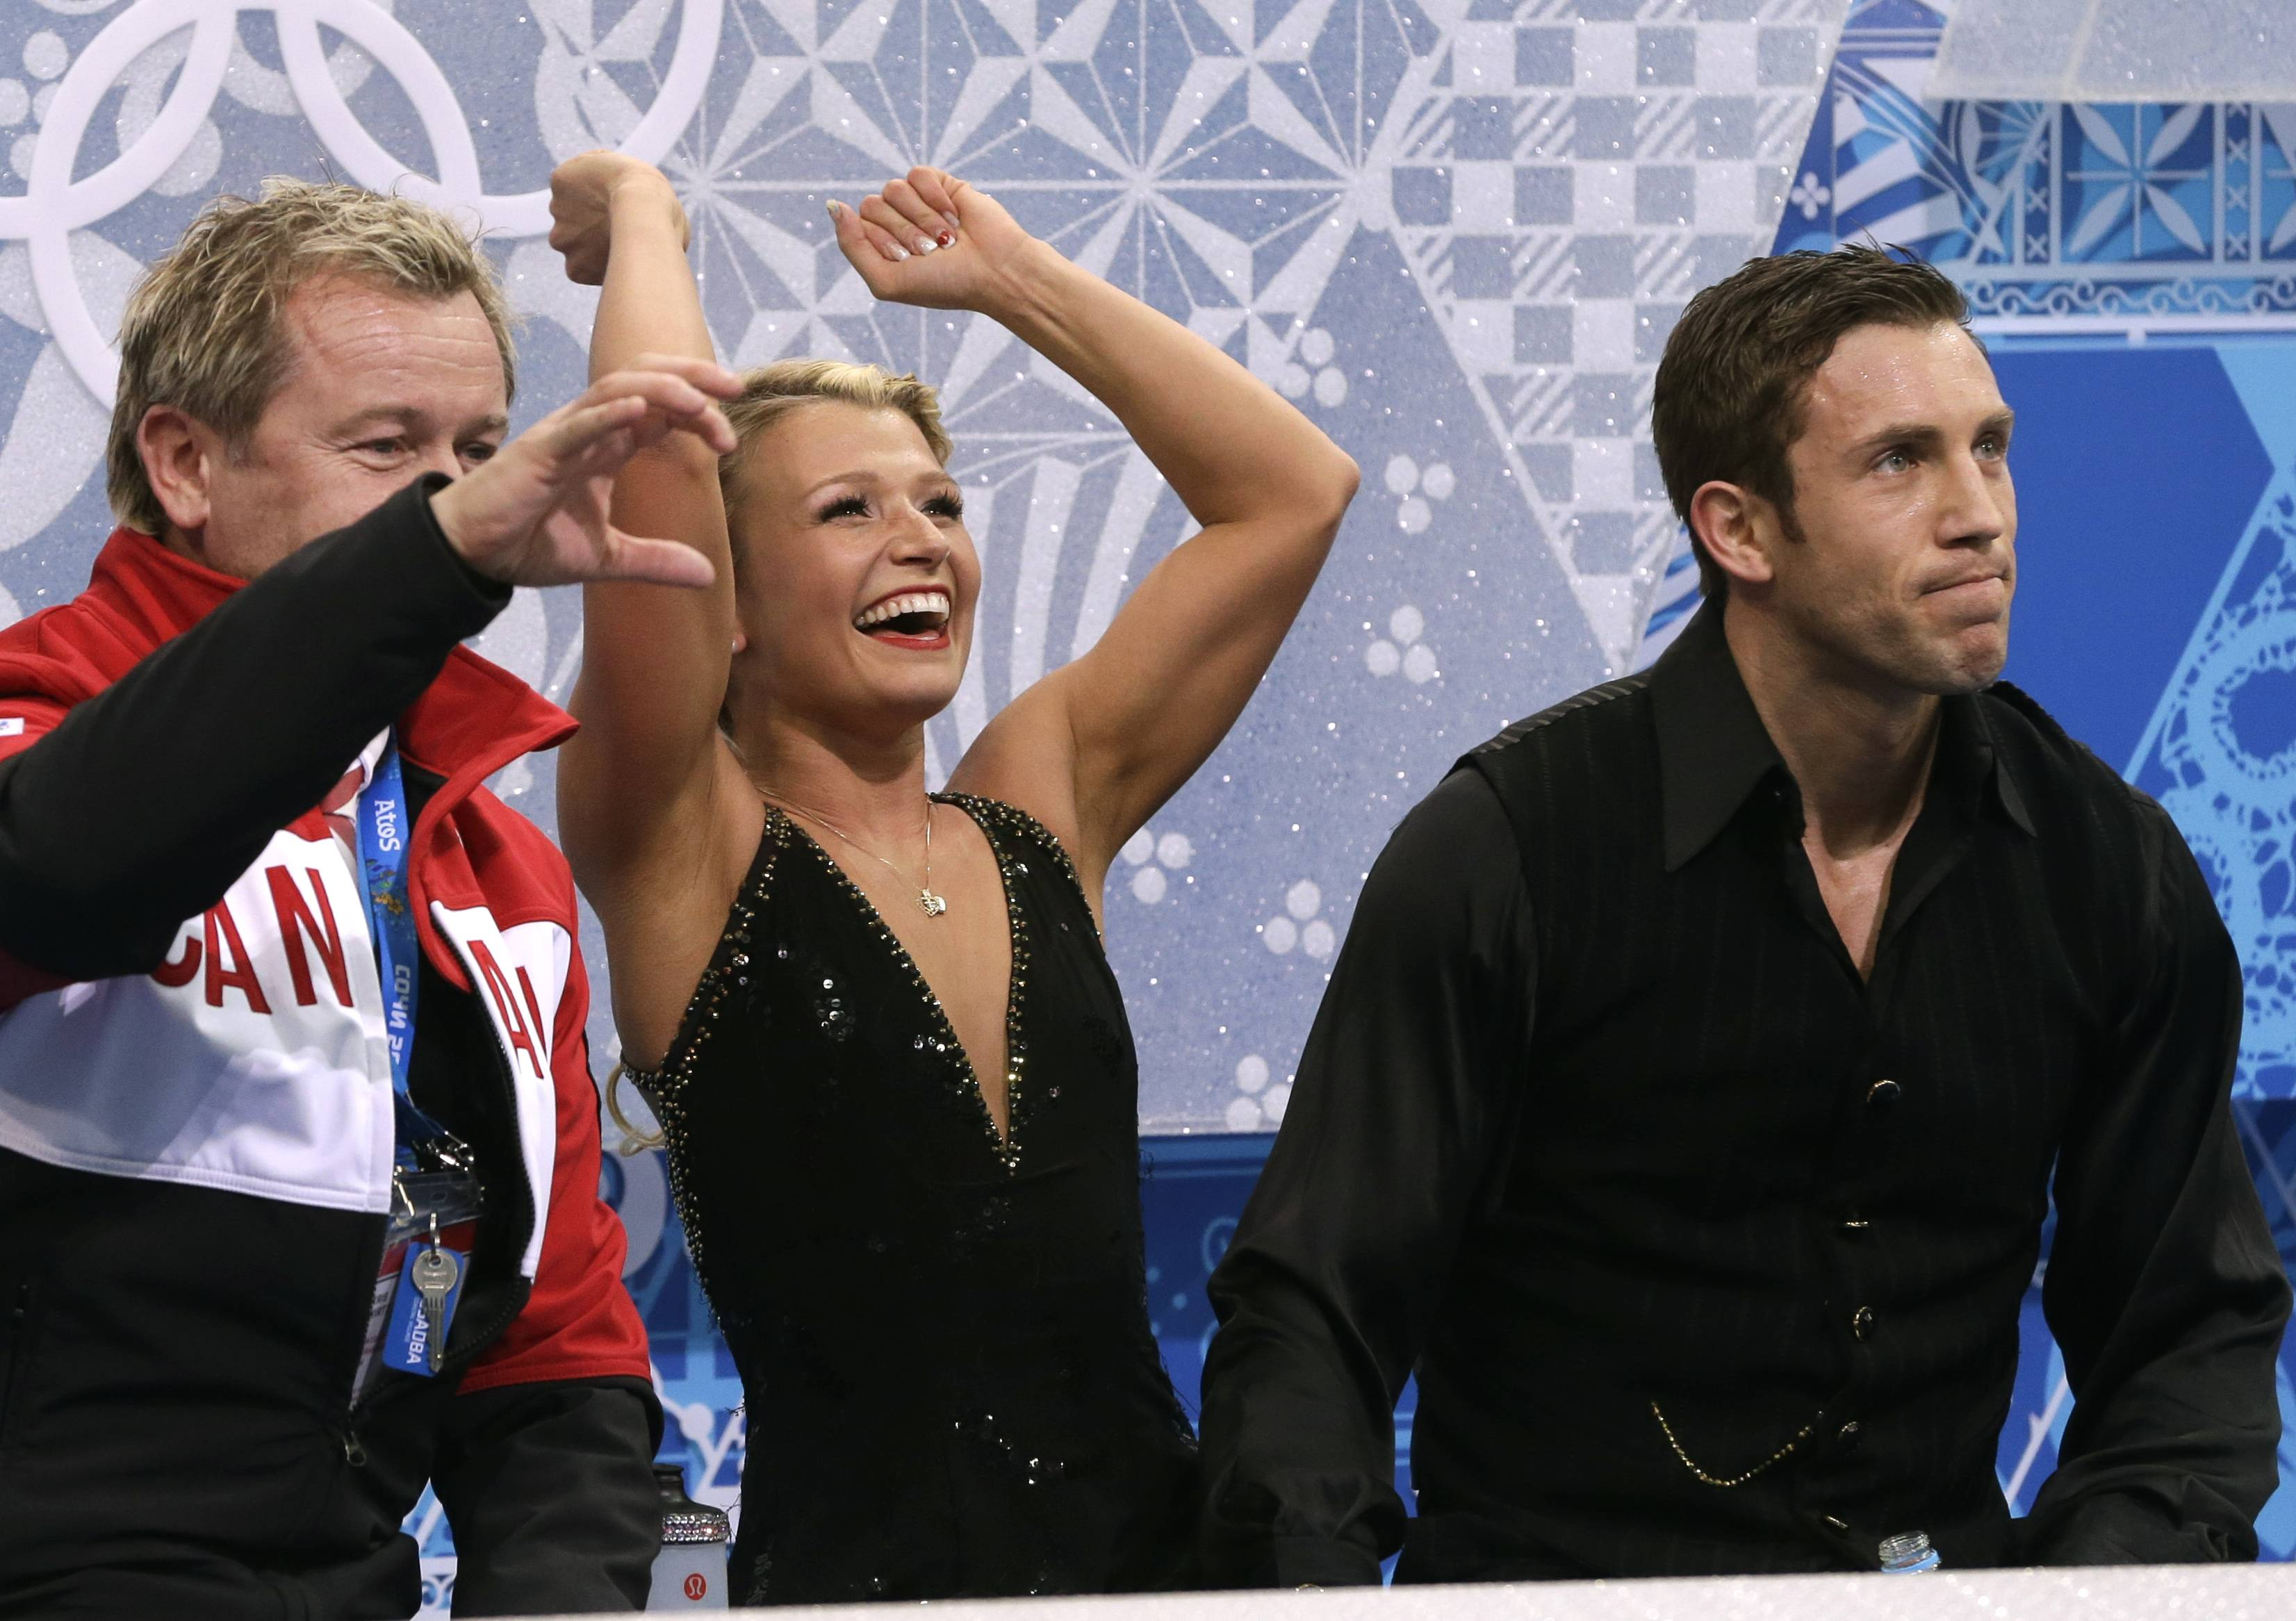 Kirsten Moore-Towers, center, gestures as she and Dylan Moscovitch of Canada wait in the results area after competing in the pairs free skate figure skating.